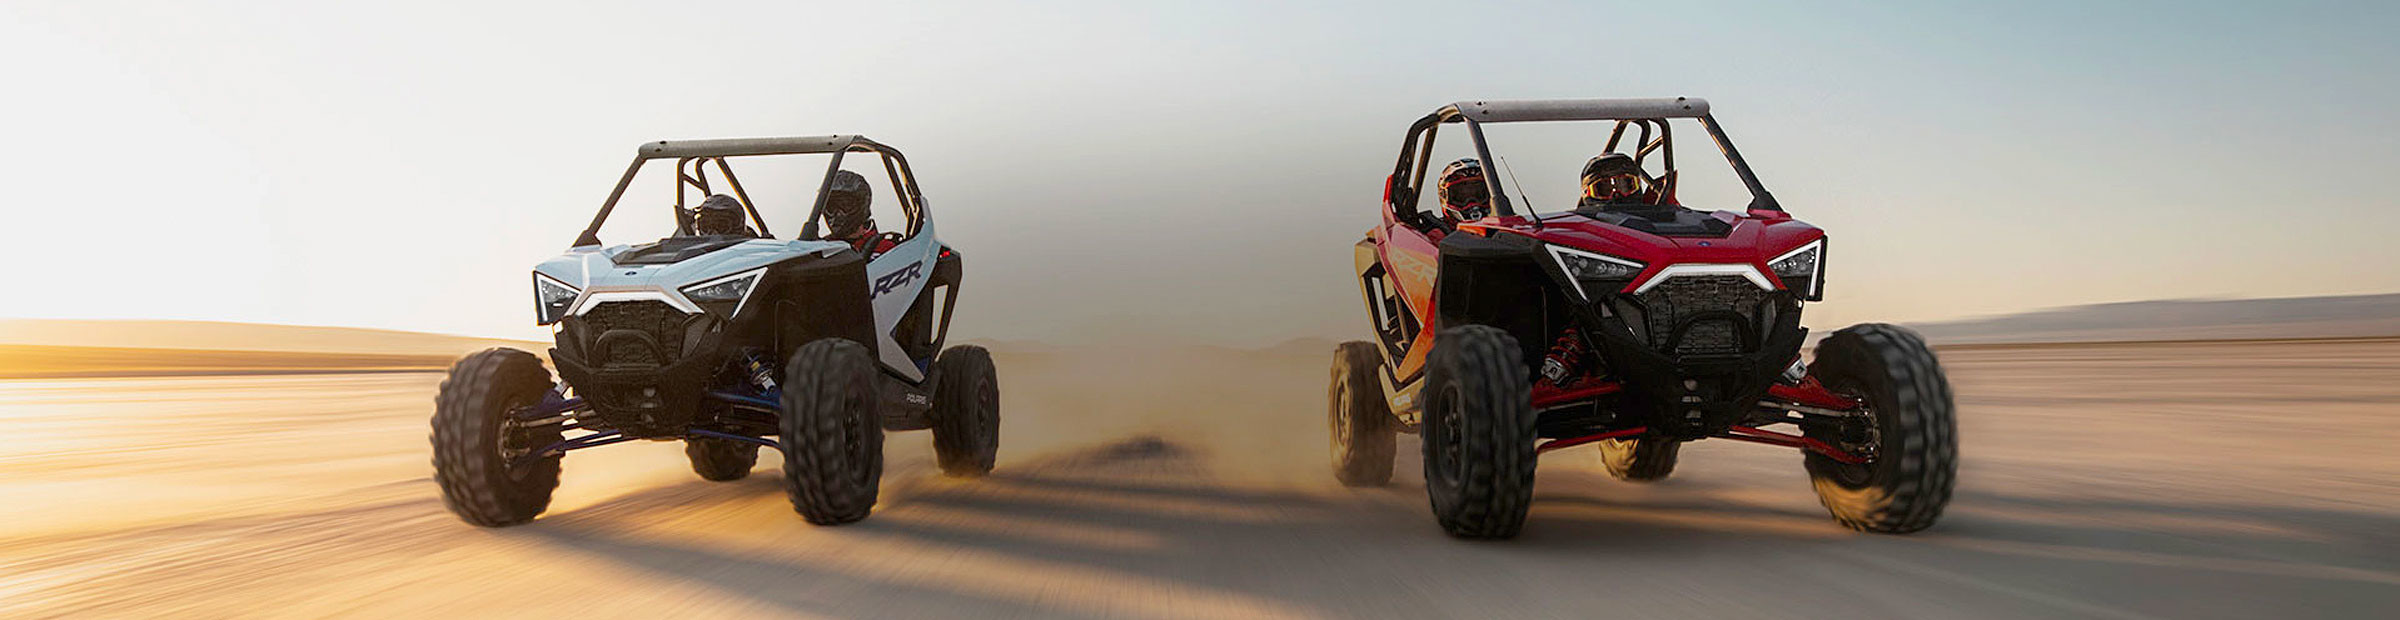 2020 RZR® Side by Sides